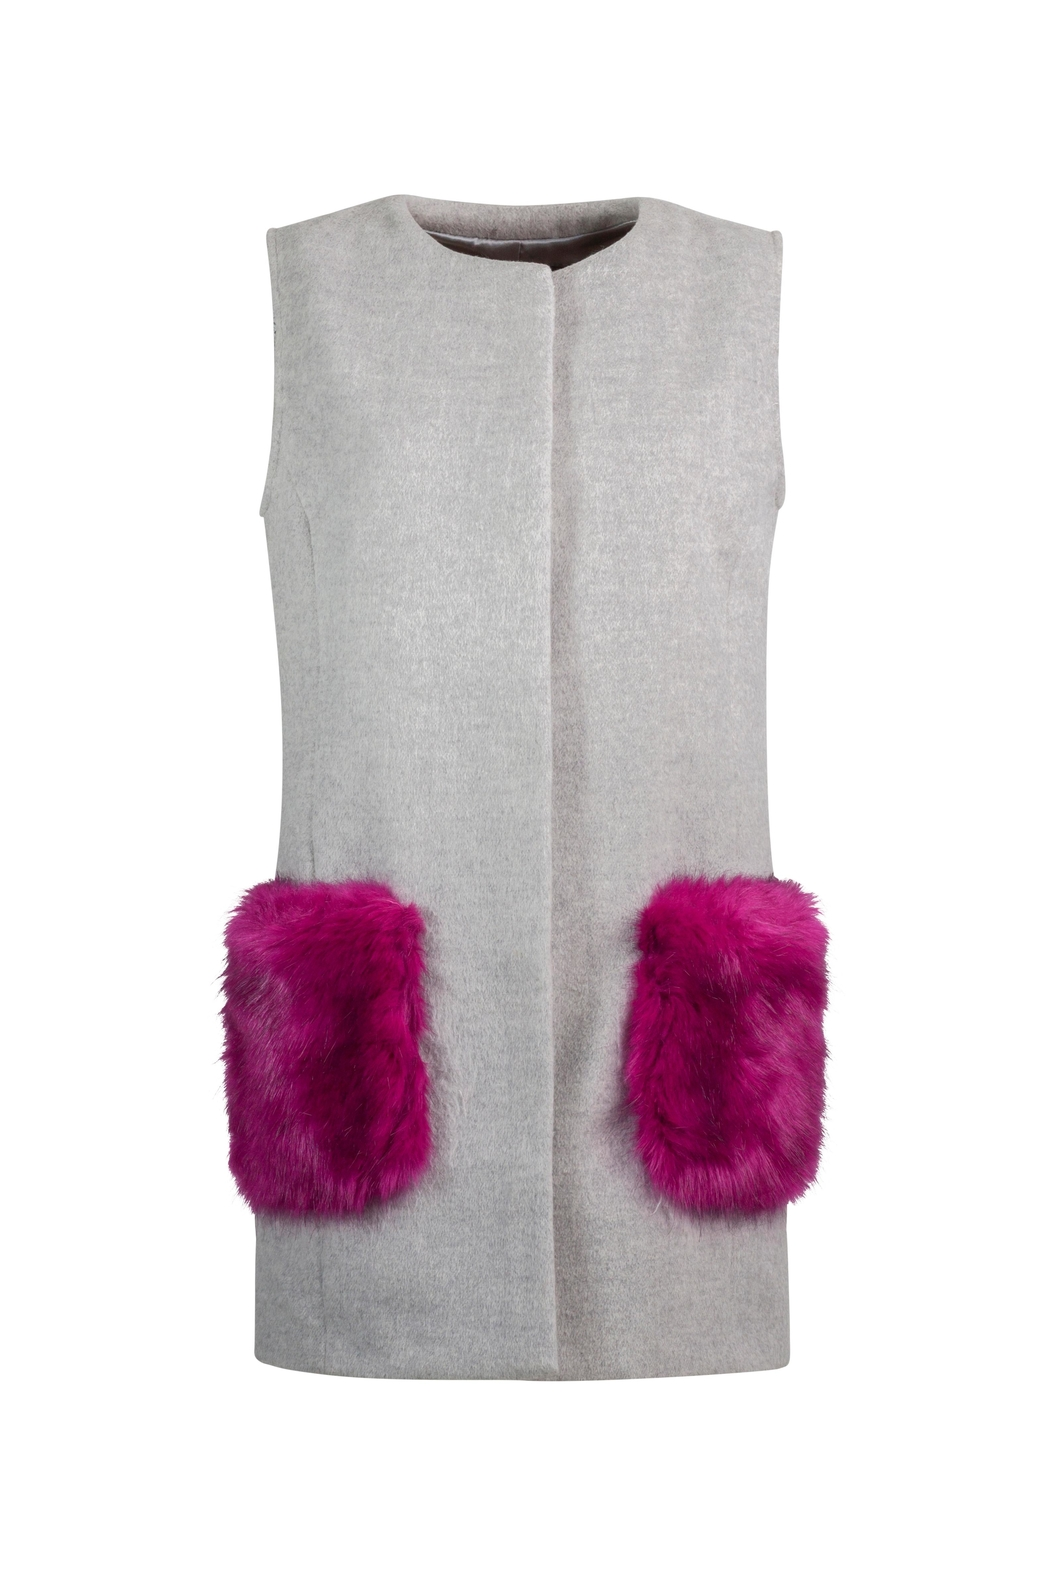 UNREAL FUR Vested Interest Gilet - Front Full Image